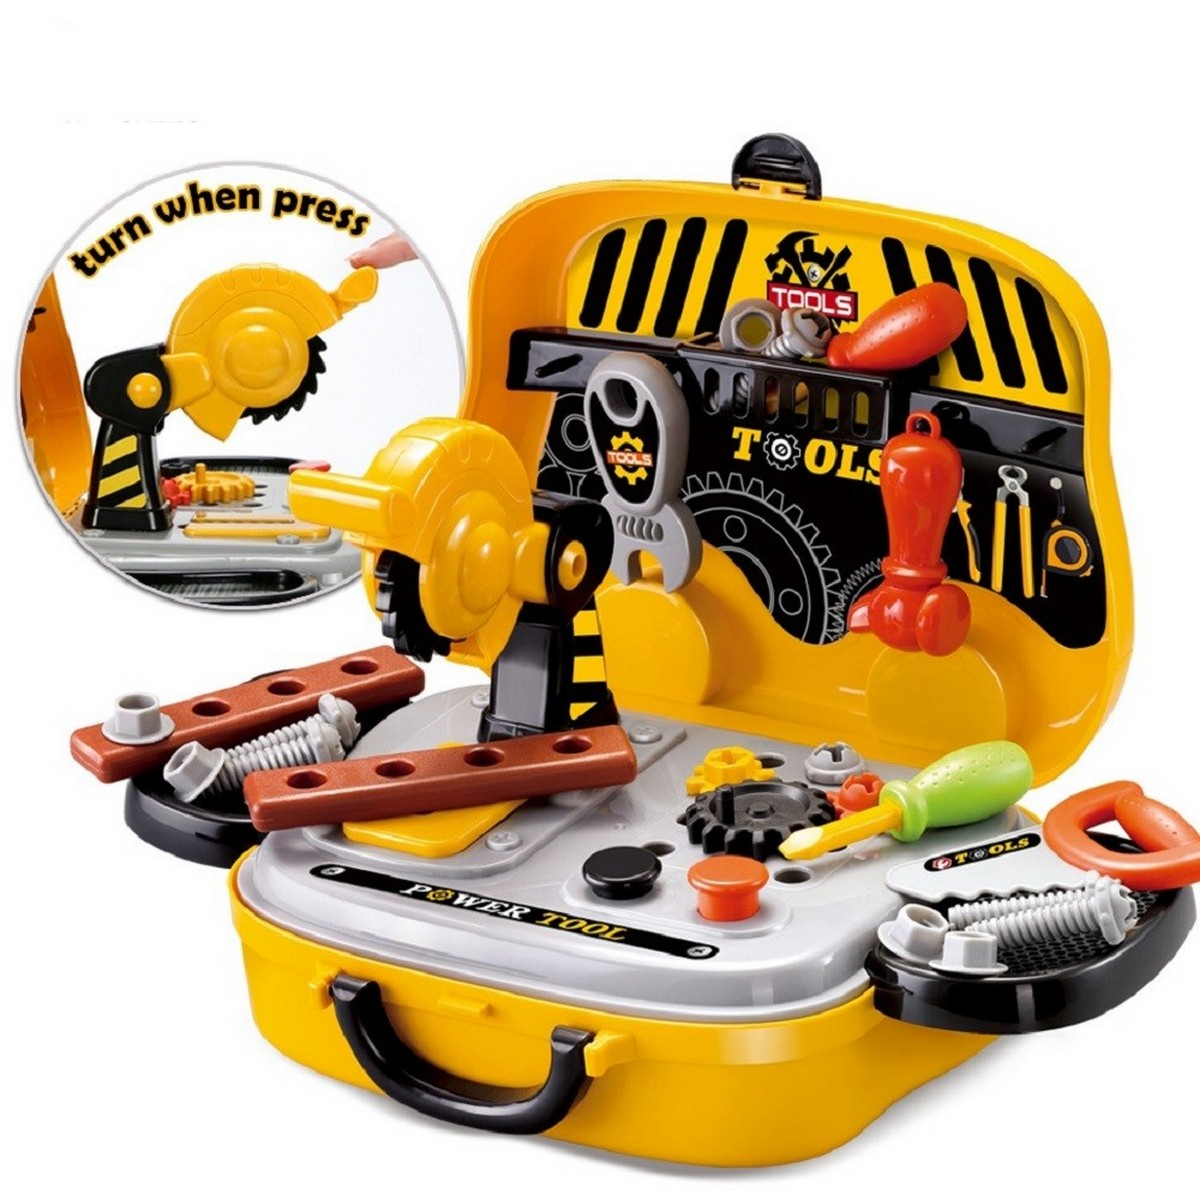 Engineer Construction Tool Suitcase Chainsaw Screws Hammer Kids Garden Tool Toy Set